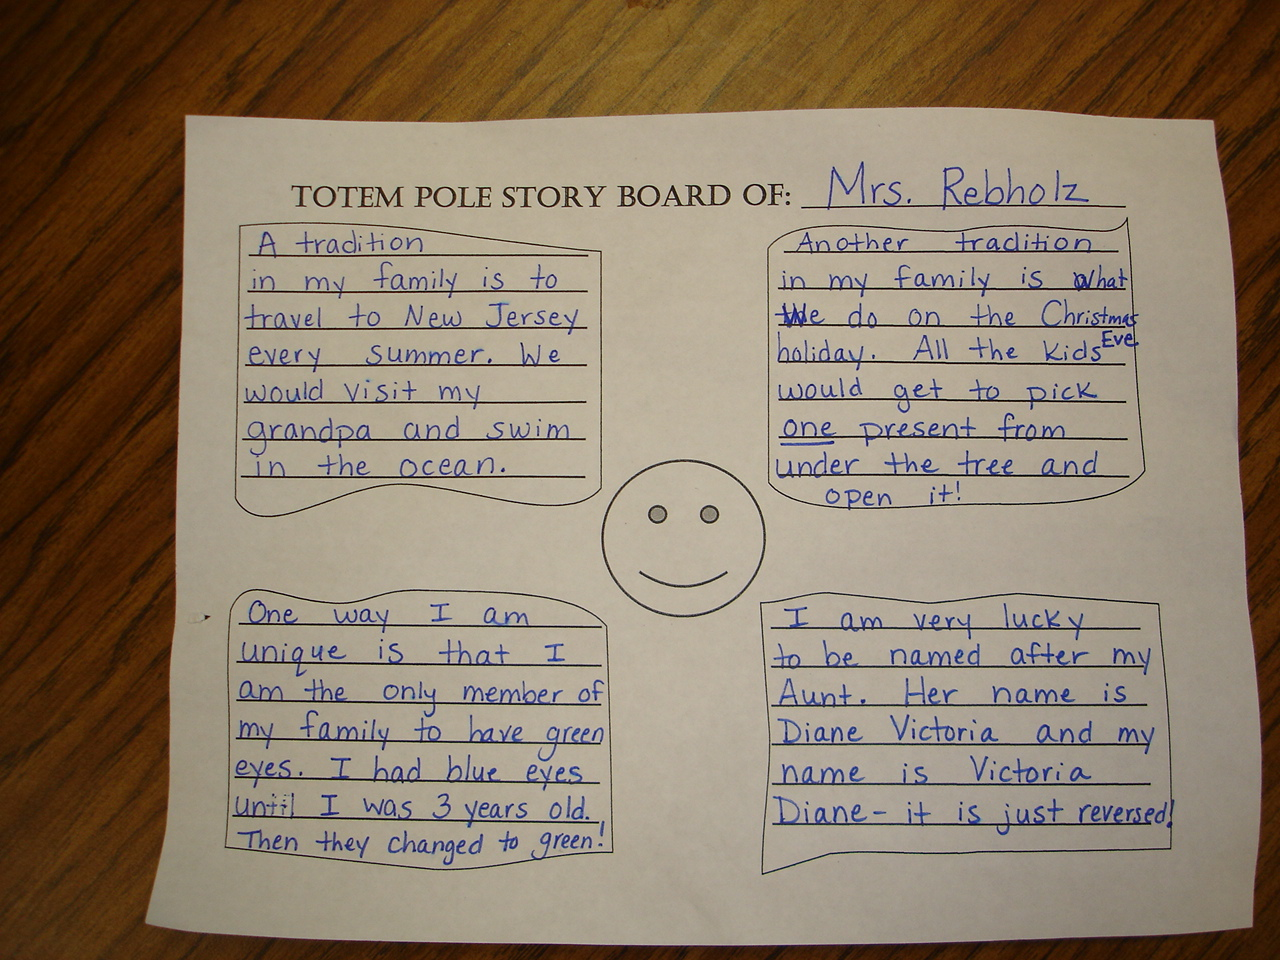 family picture project ideas for 5th grade - Tori s Teacher Tips Totem Pole Project